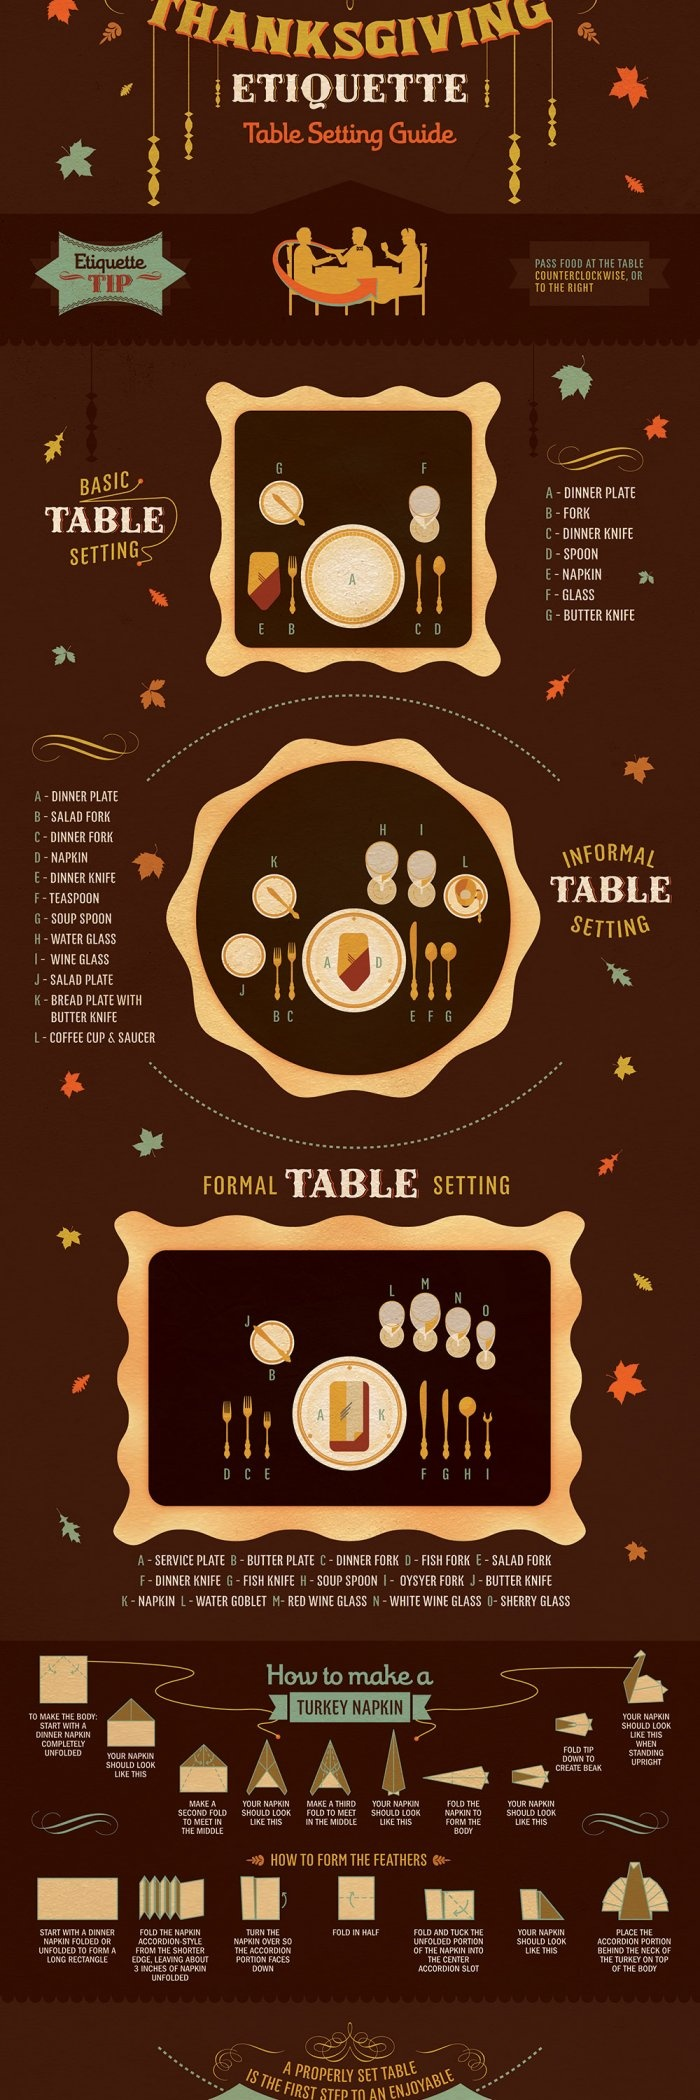 Thanksgiving Table Setting Ideas Eitquette Tips To Make Your Meal A Success Find EtiquetteDining